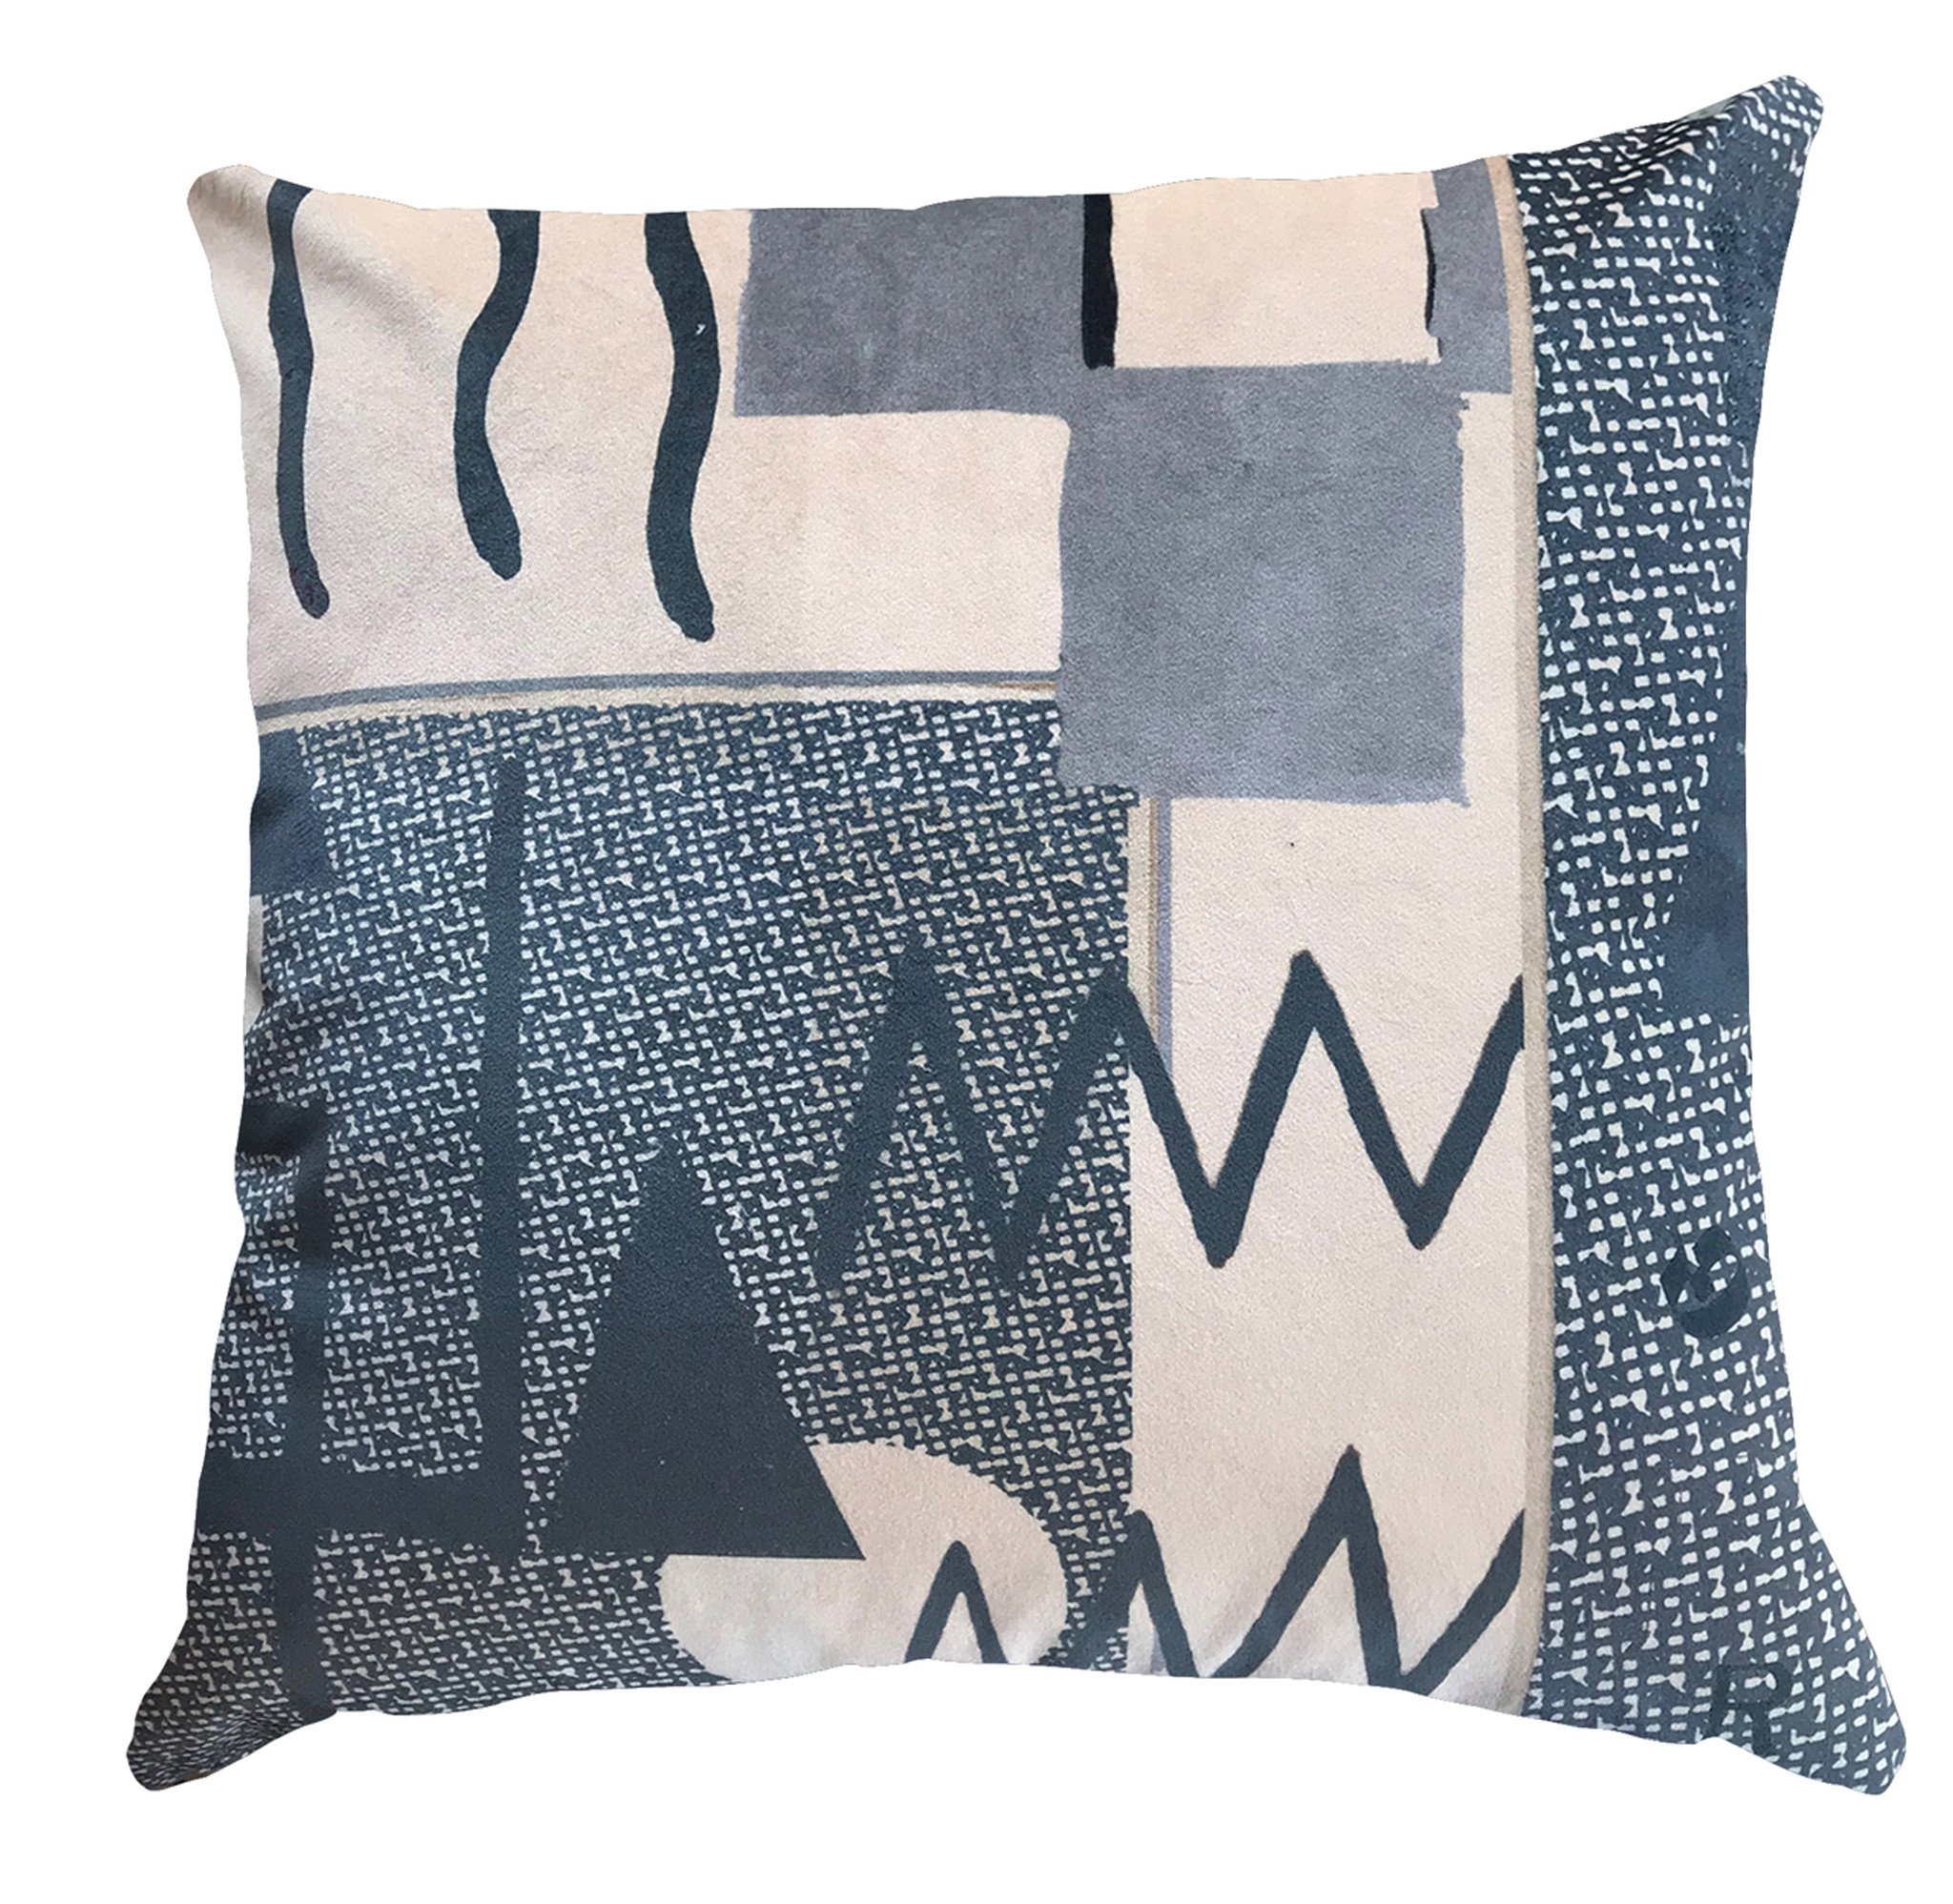 Cushion - Modigliani Was Here - Abstract in Blue Zig Zag